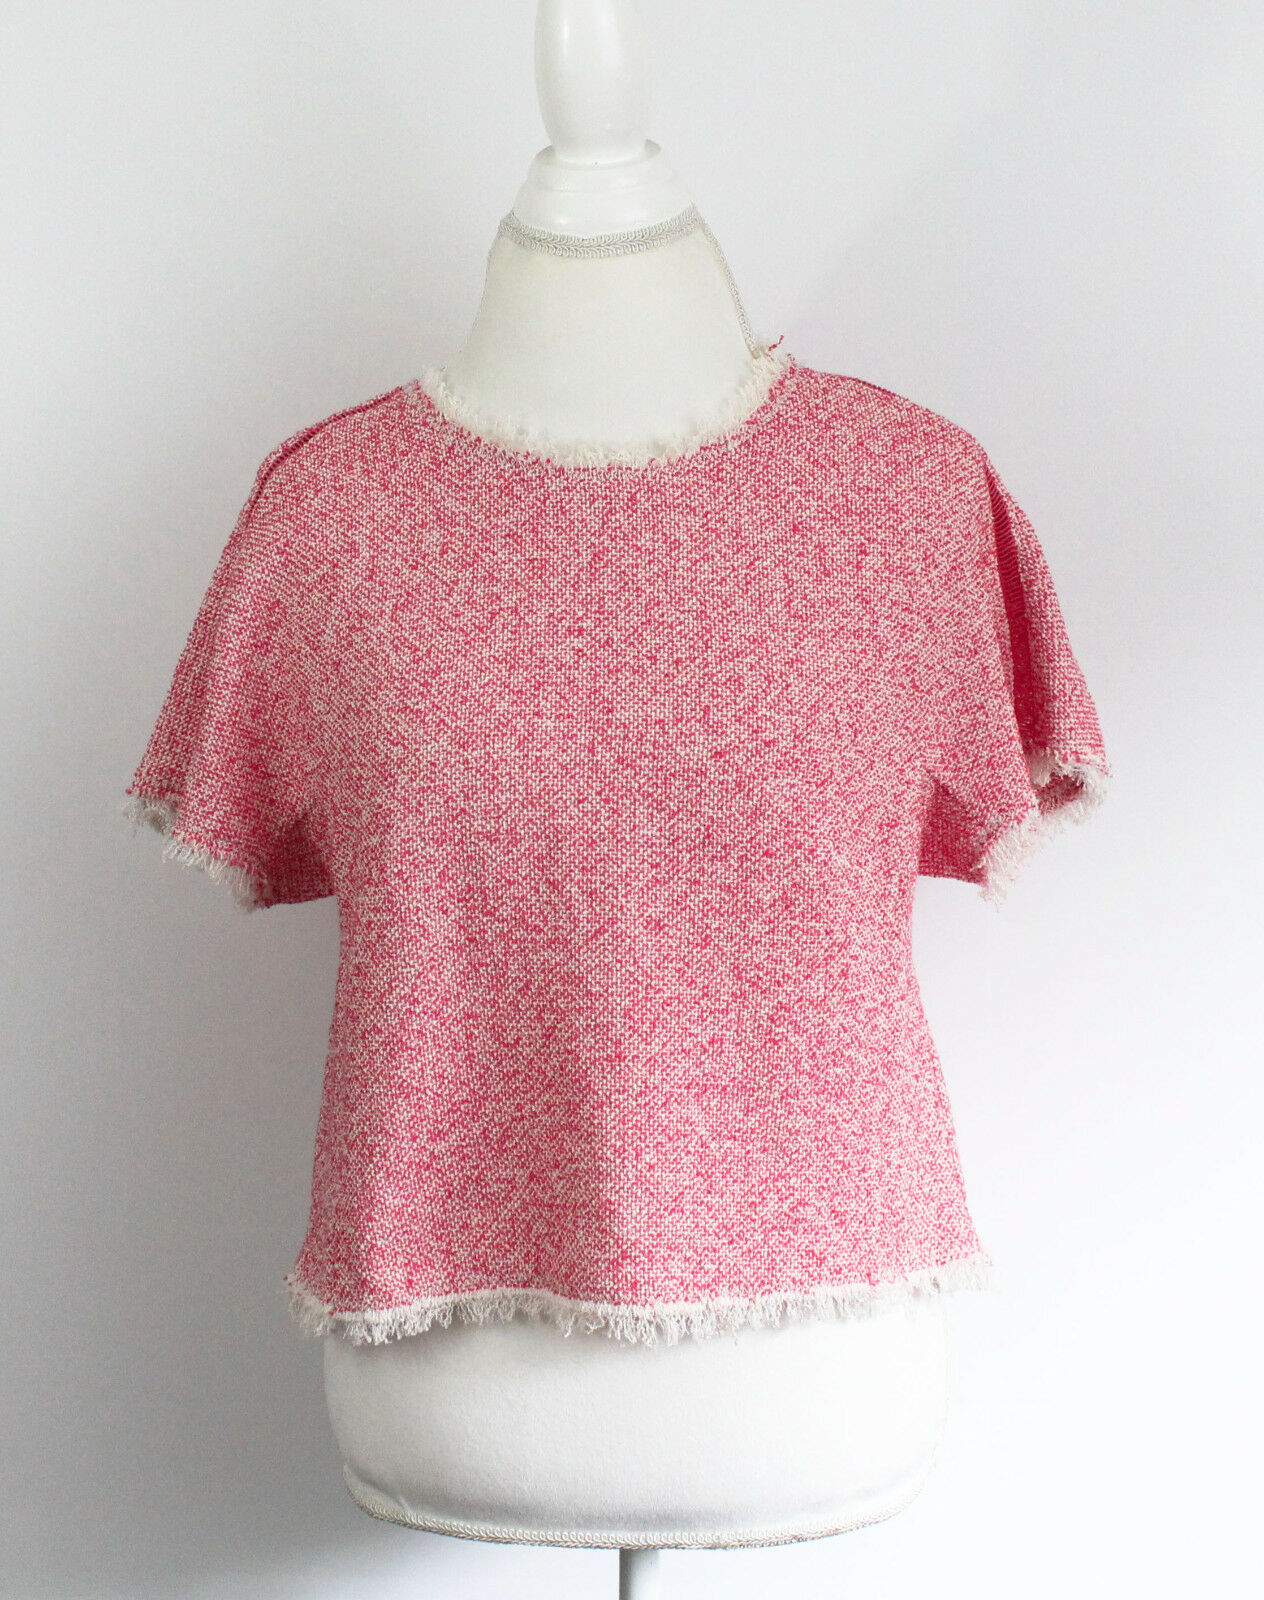 NEW Rebecca TaylorShort-Sleeve Summer Tweed Cropped Top, Coral PInk